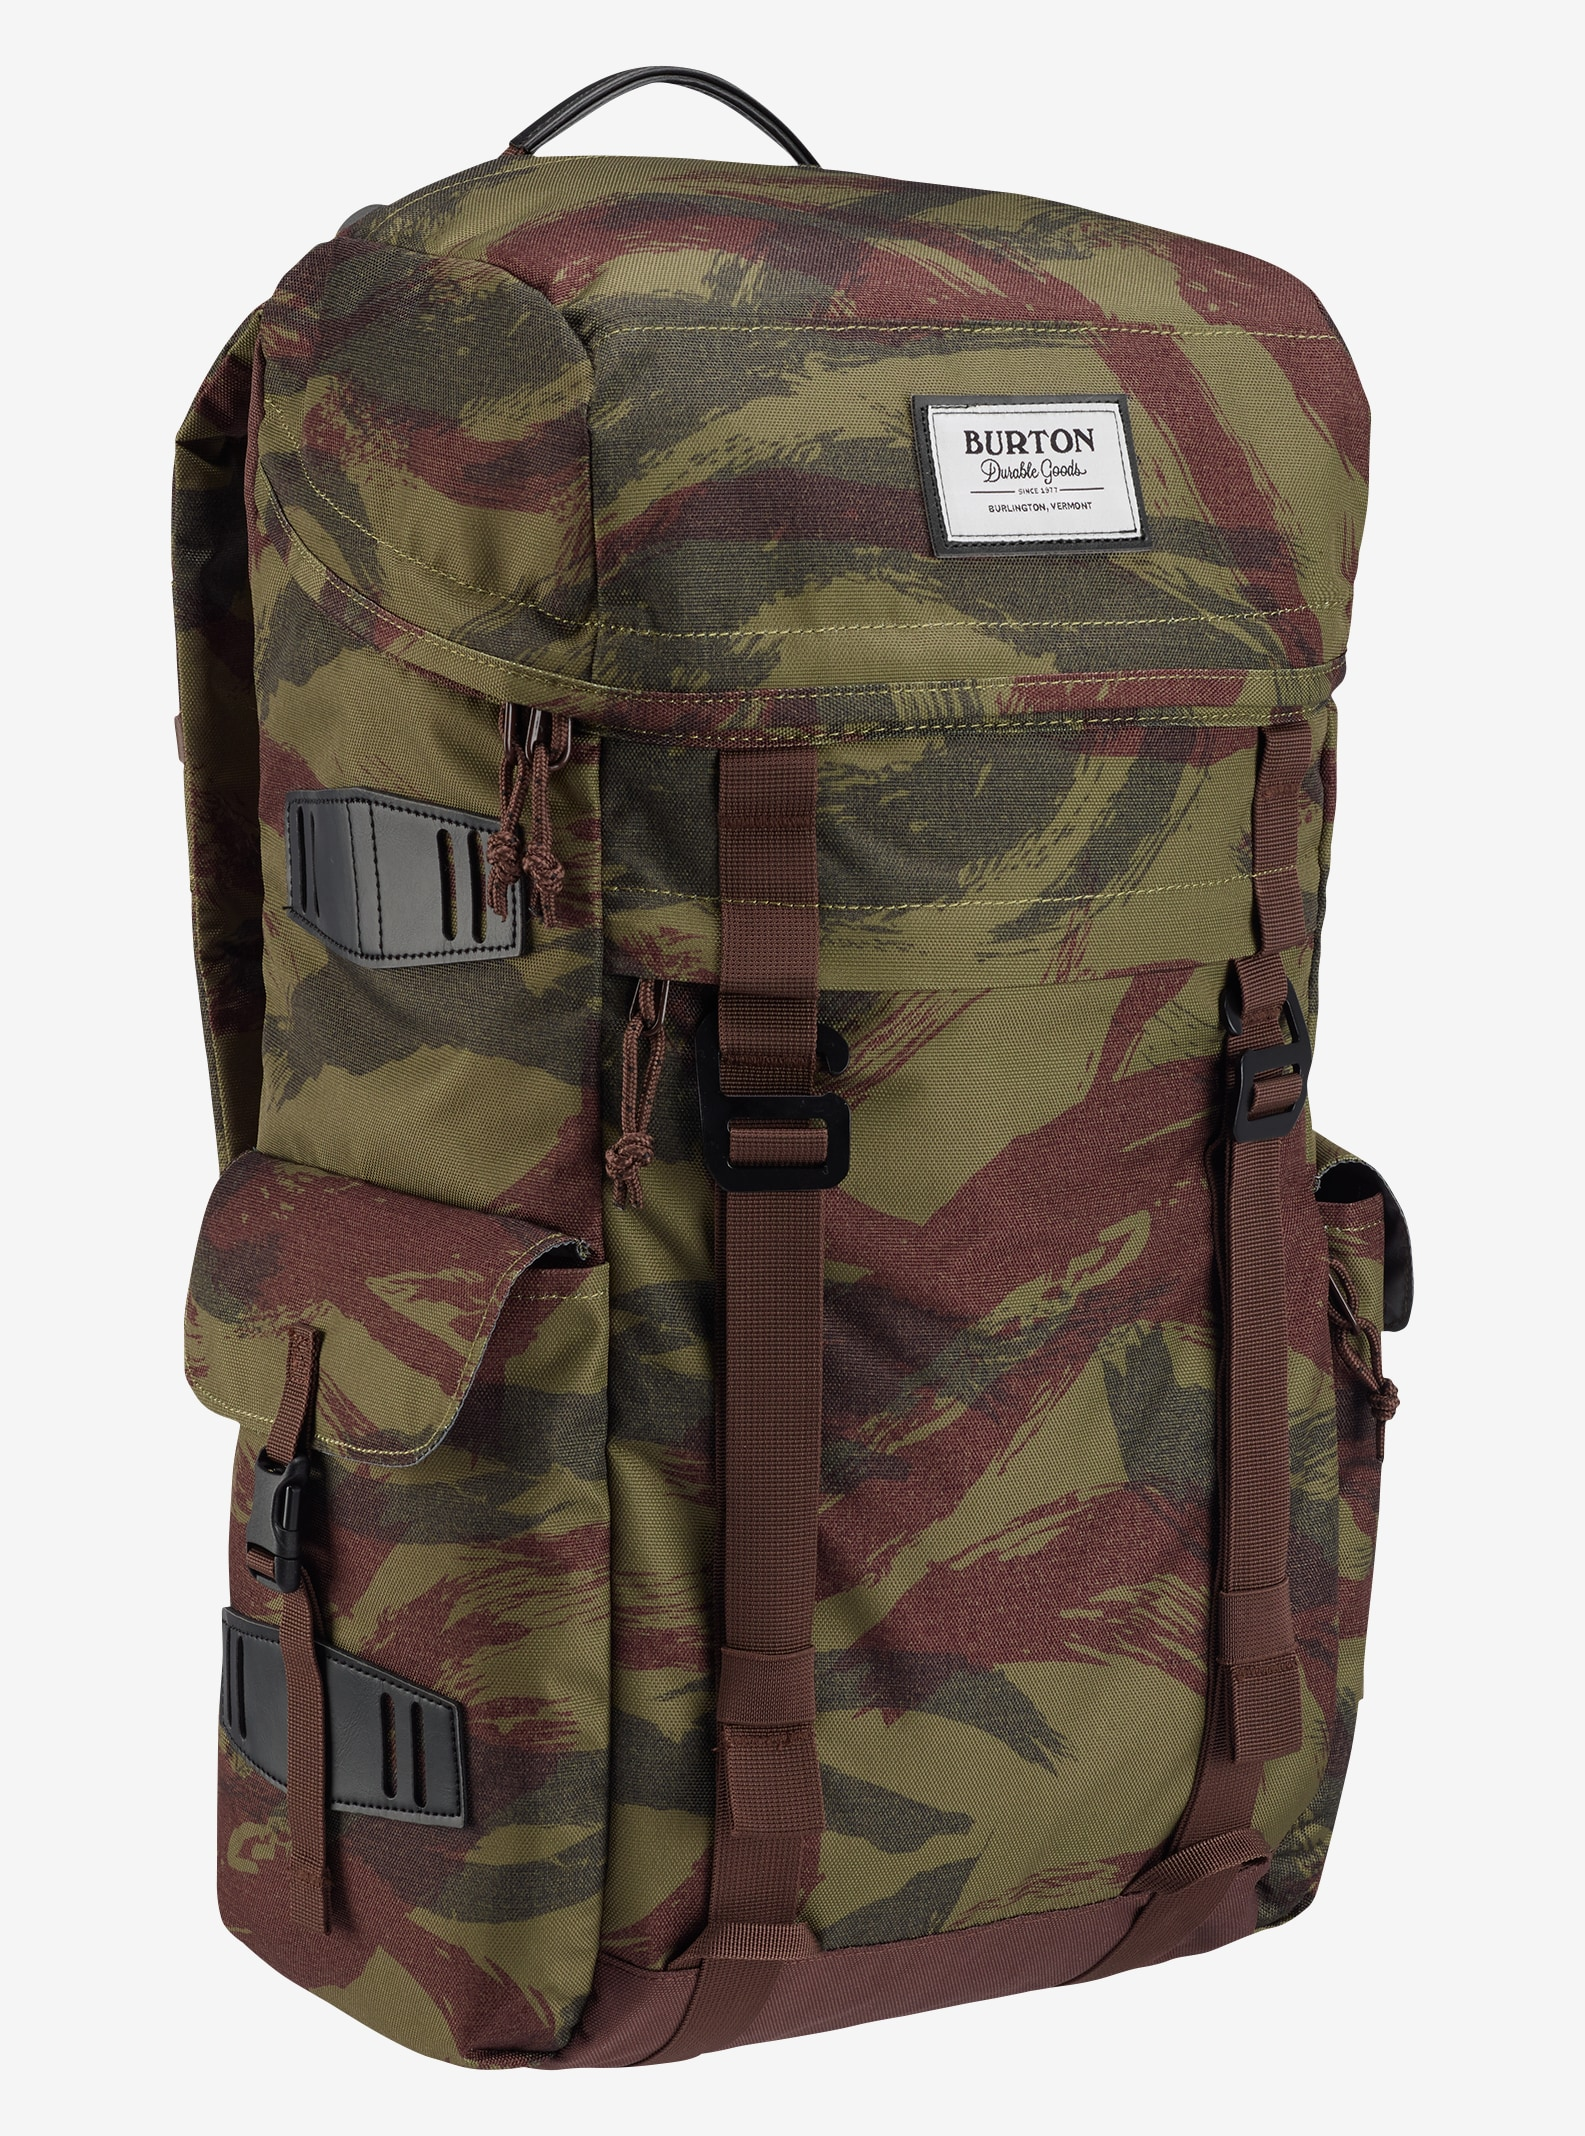 Burton Annex Backpack shown in Brushstroke Camo Print